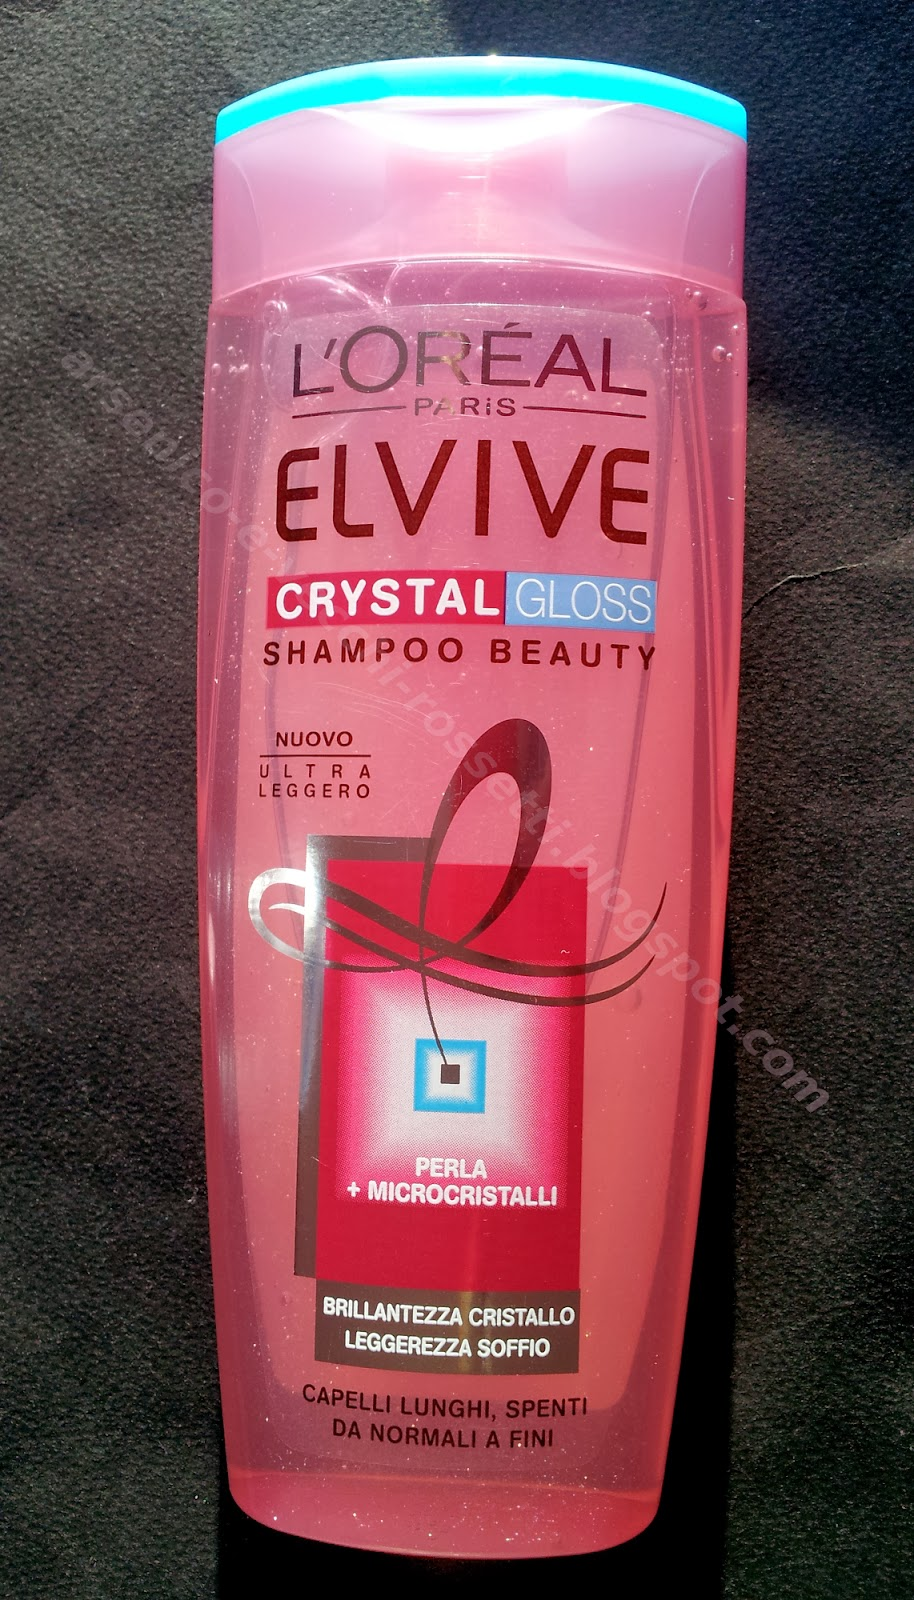 L'Oréal Paris Elvive Crystal Gloss Shampoo Beauty